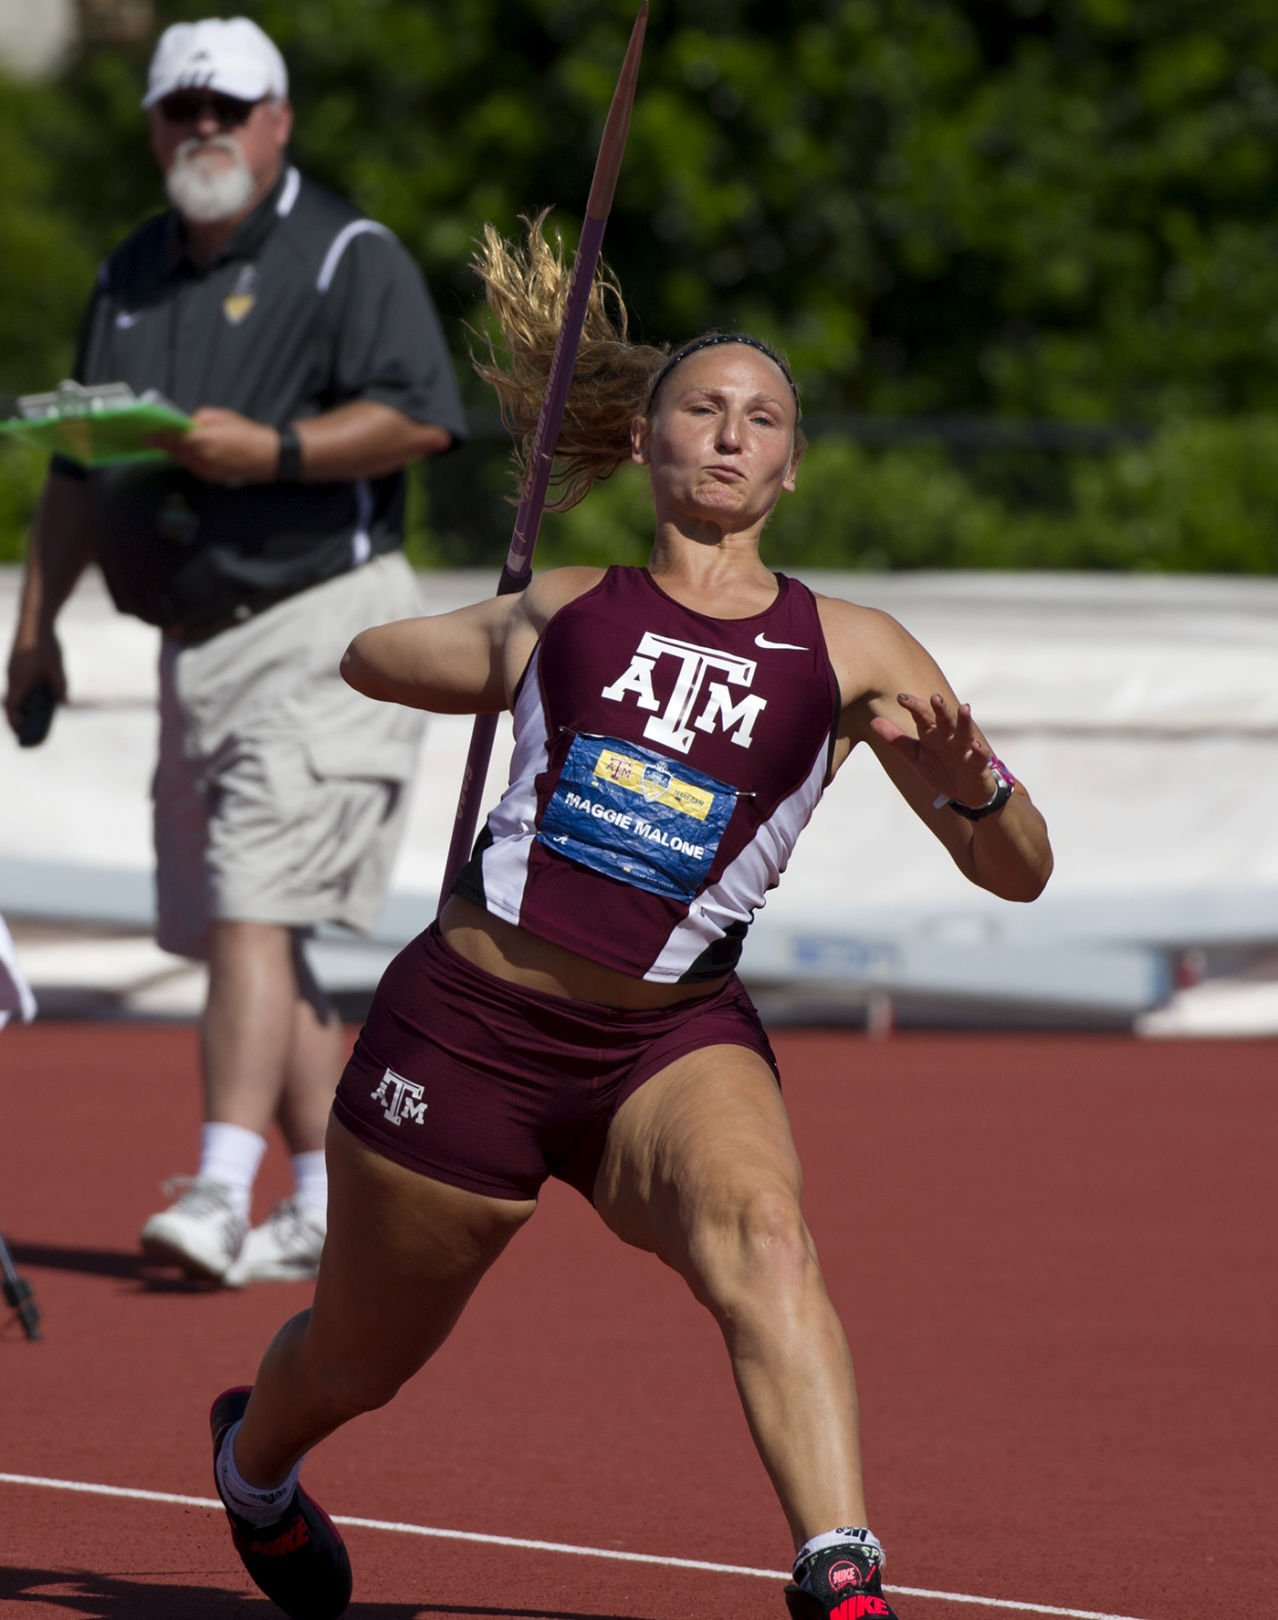 Maggie Malone track and field